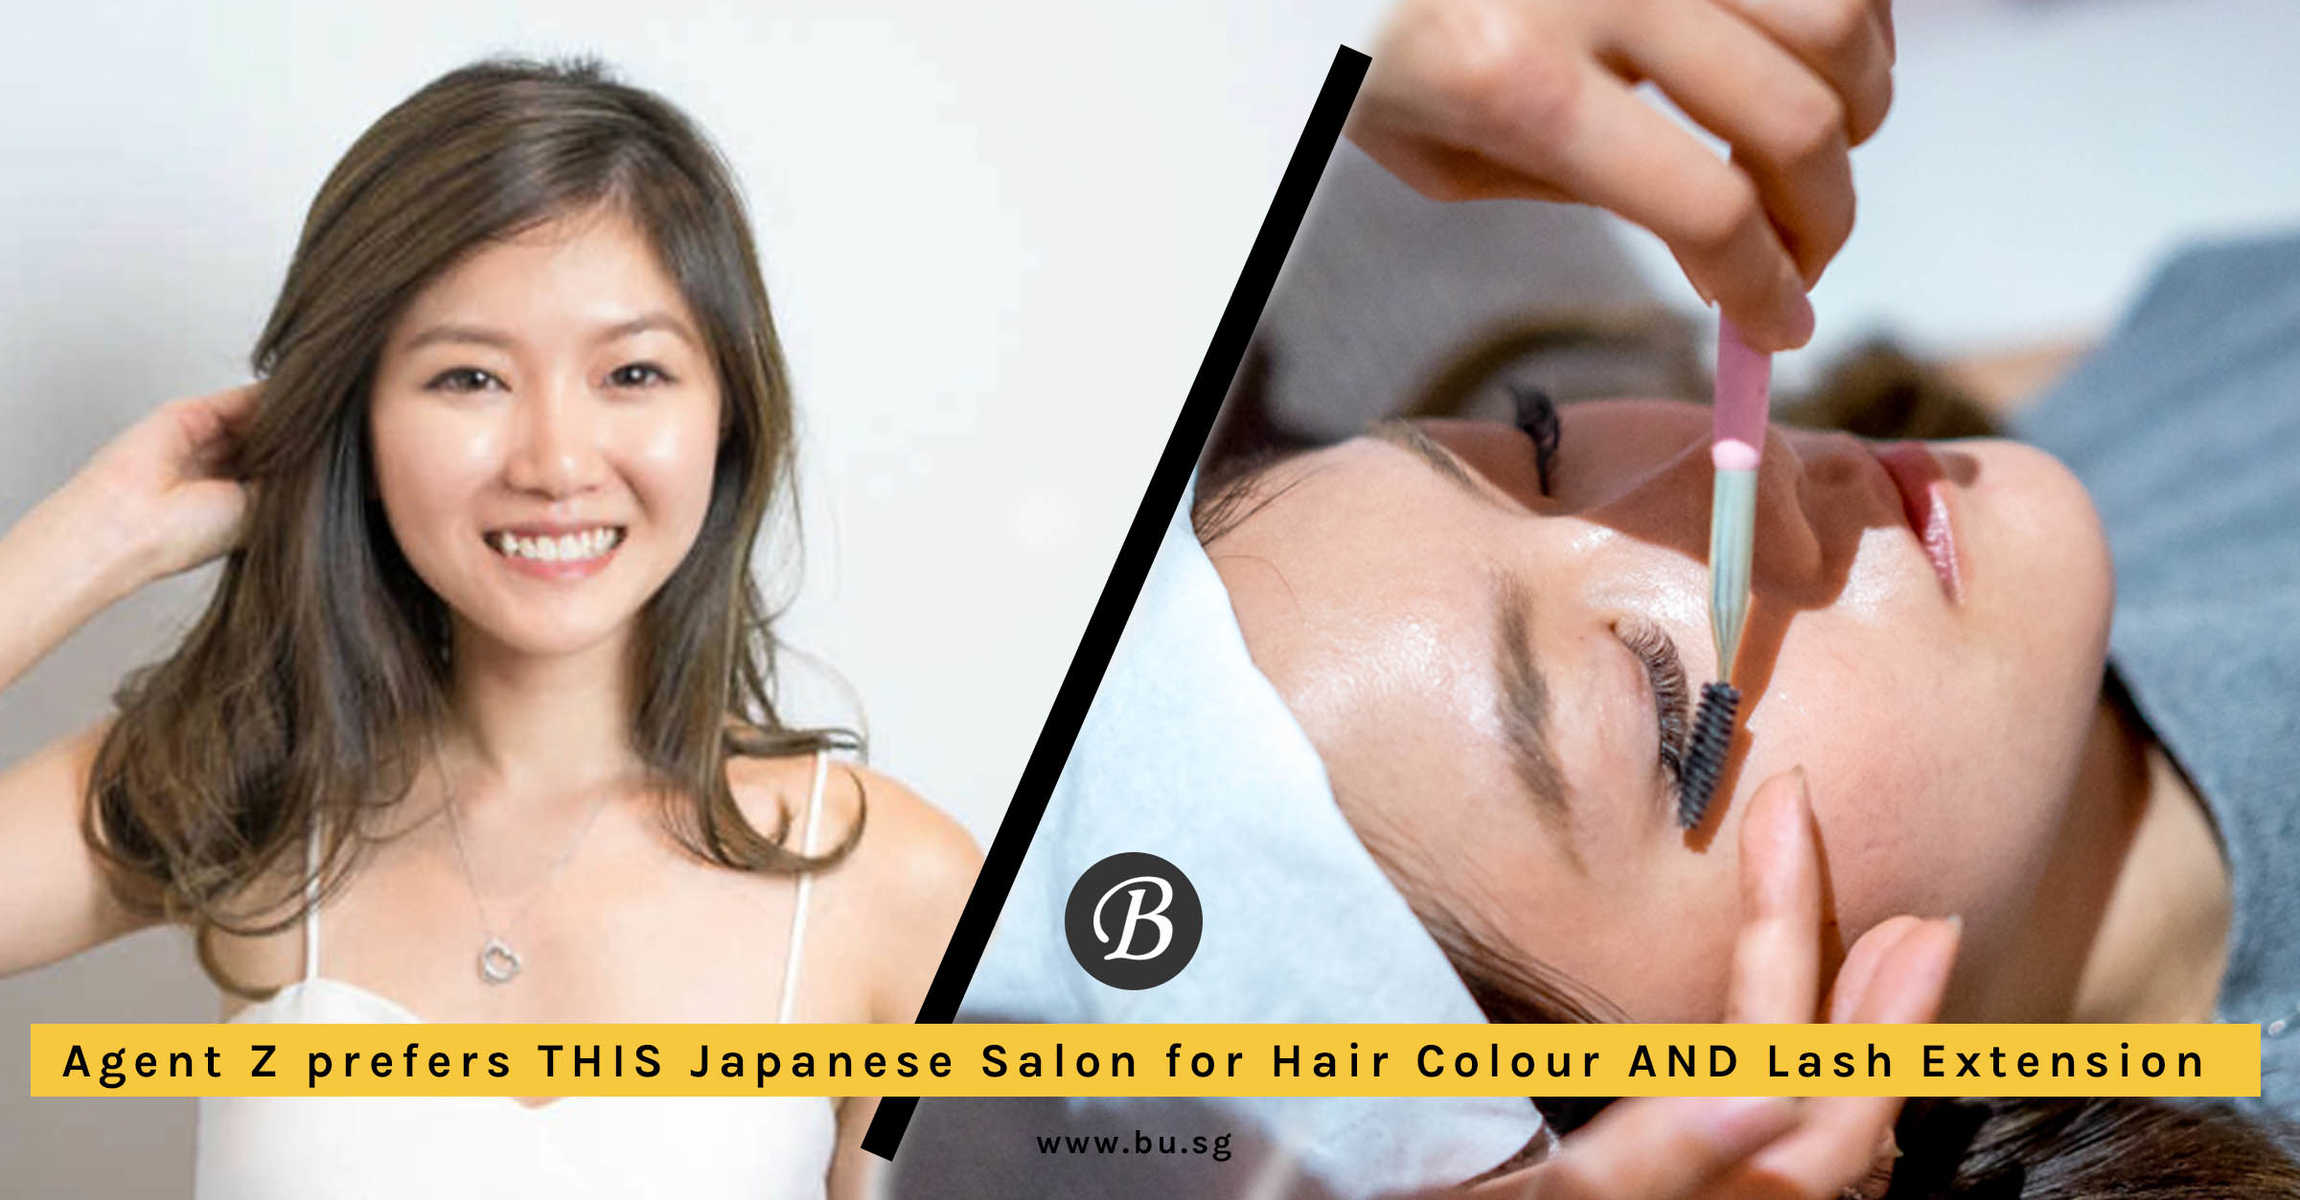 A Customer Testimonial from Banking Professional Agent Z on Khaki Ash Hair Colour at COVO Japanese Hair Salon and Eyelash Extension at KJStudio